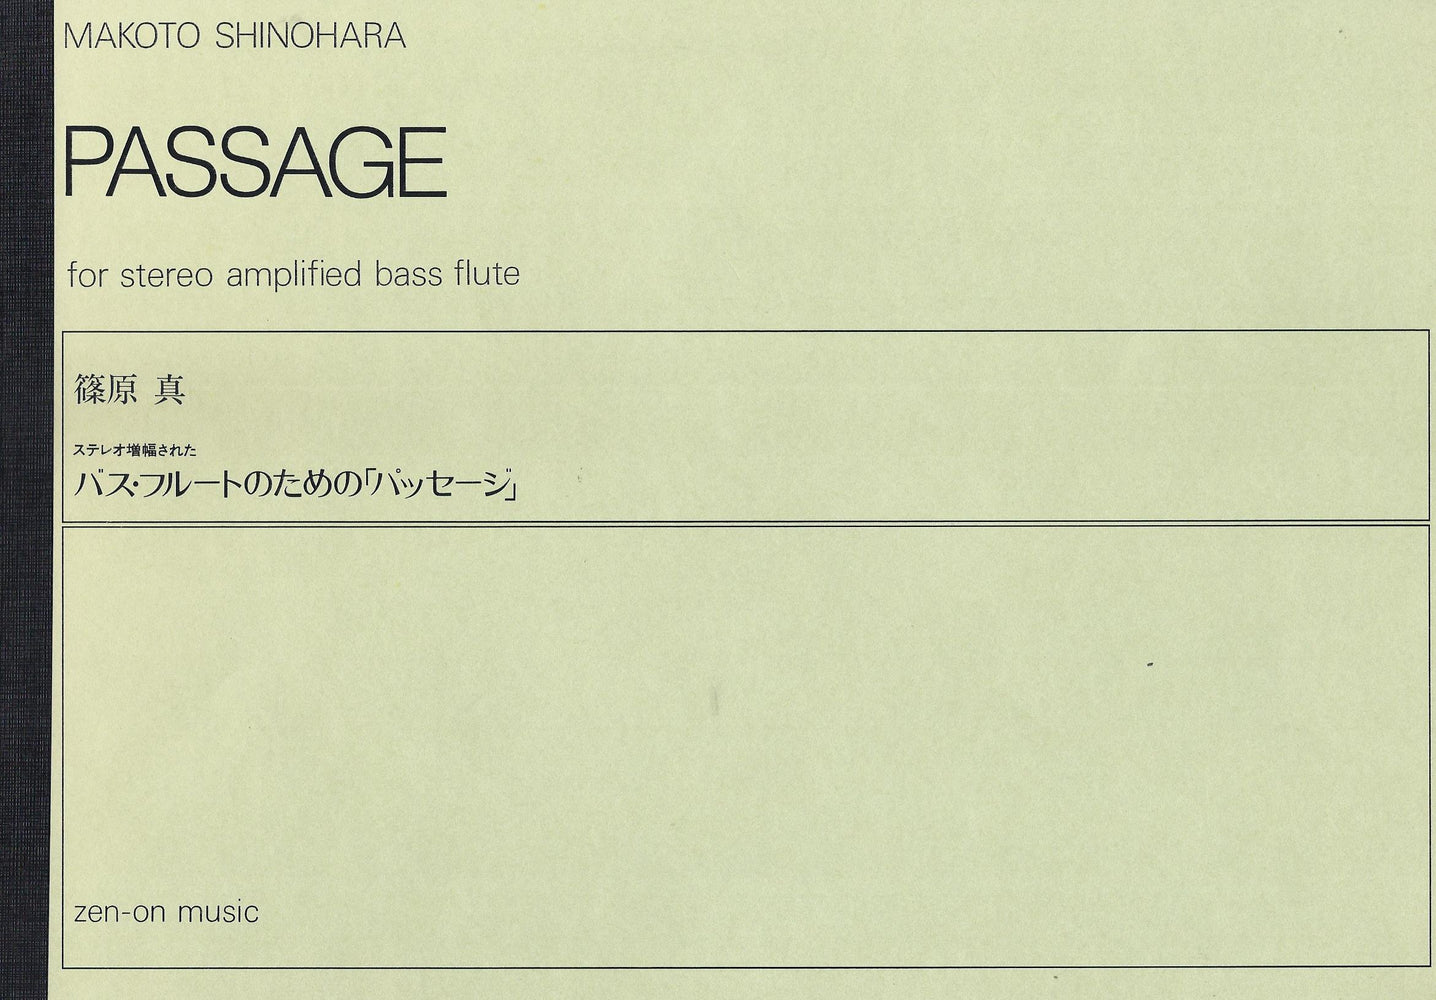 Shinohara: Passage for Bass Recorder with Stereo Liveband